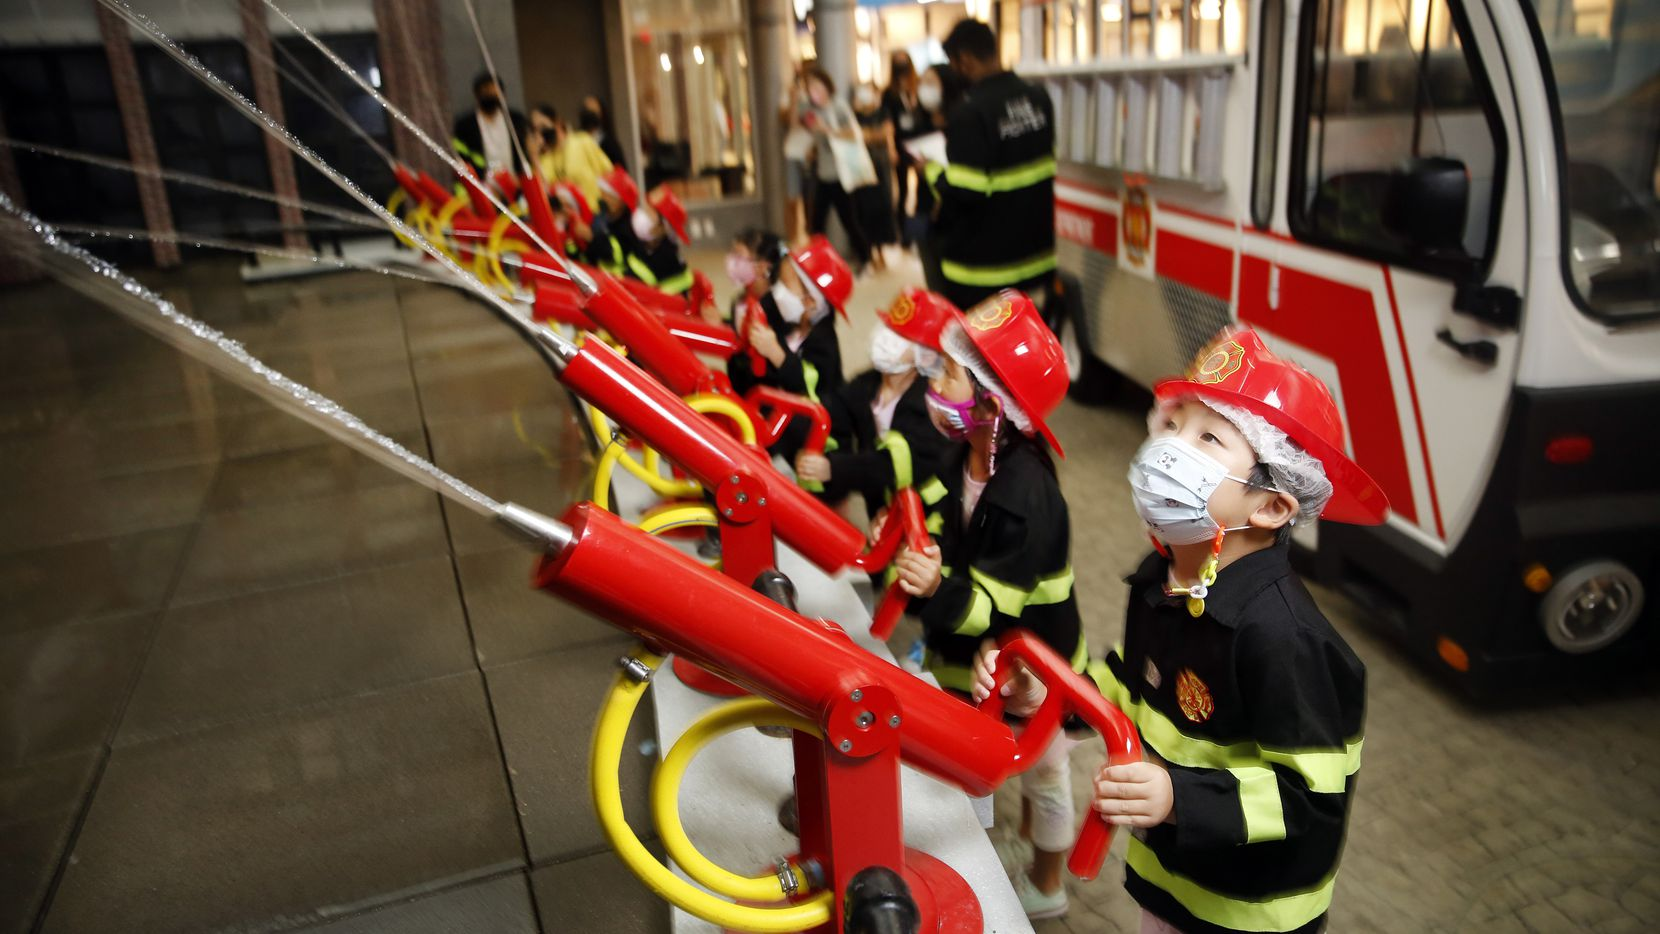 Children dressed as firefighters spray water hoses on a match factory at KidZania at Stonebriar Centre in Frisco, the company's only United States location.